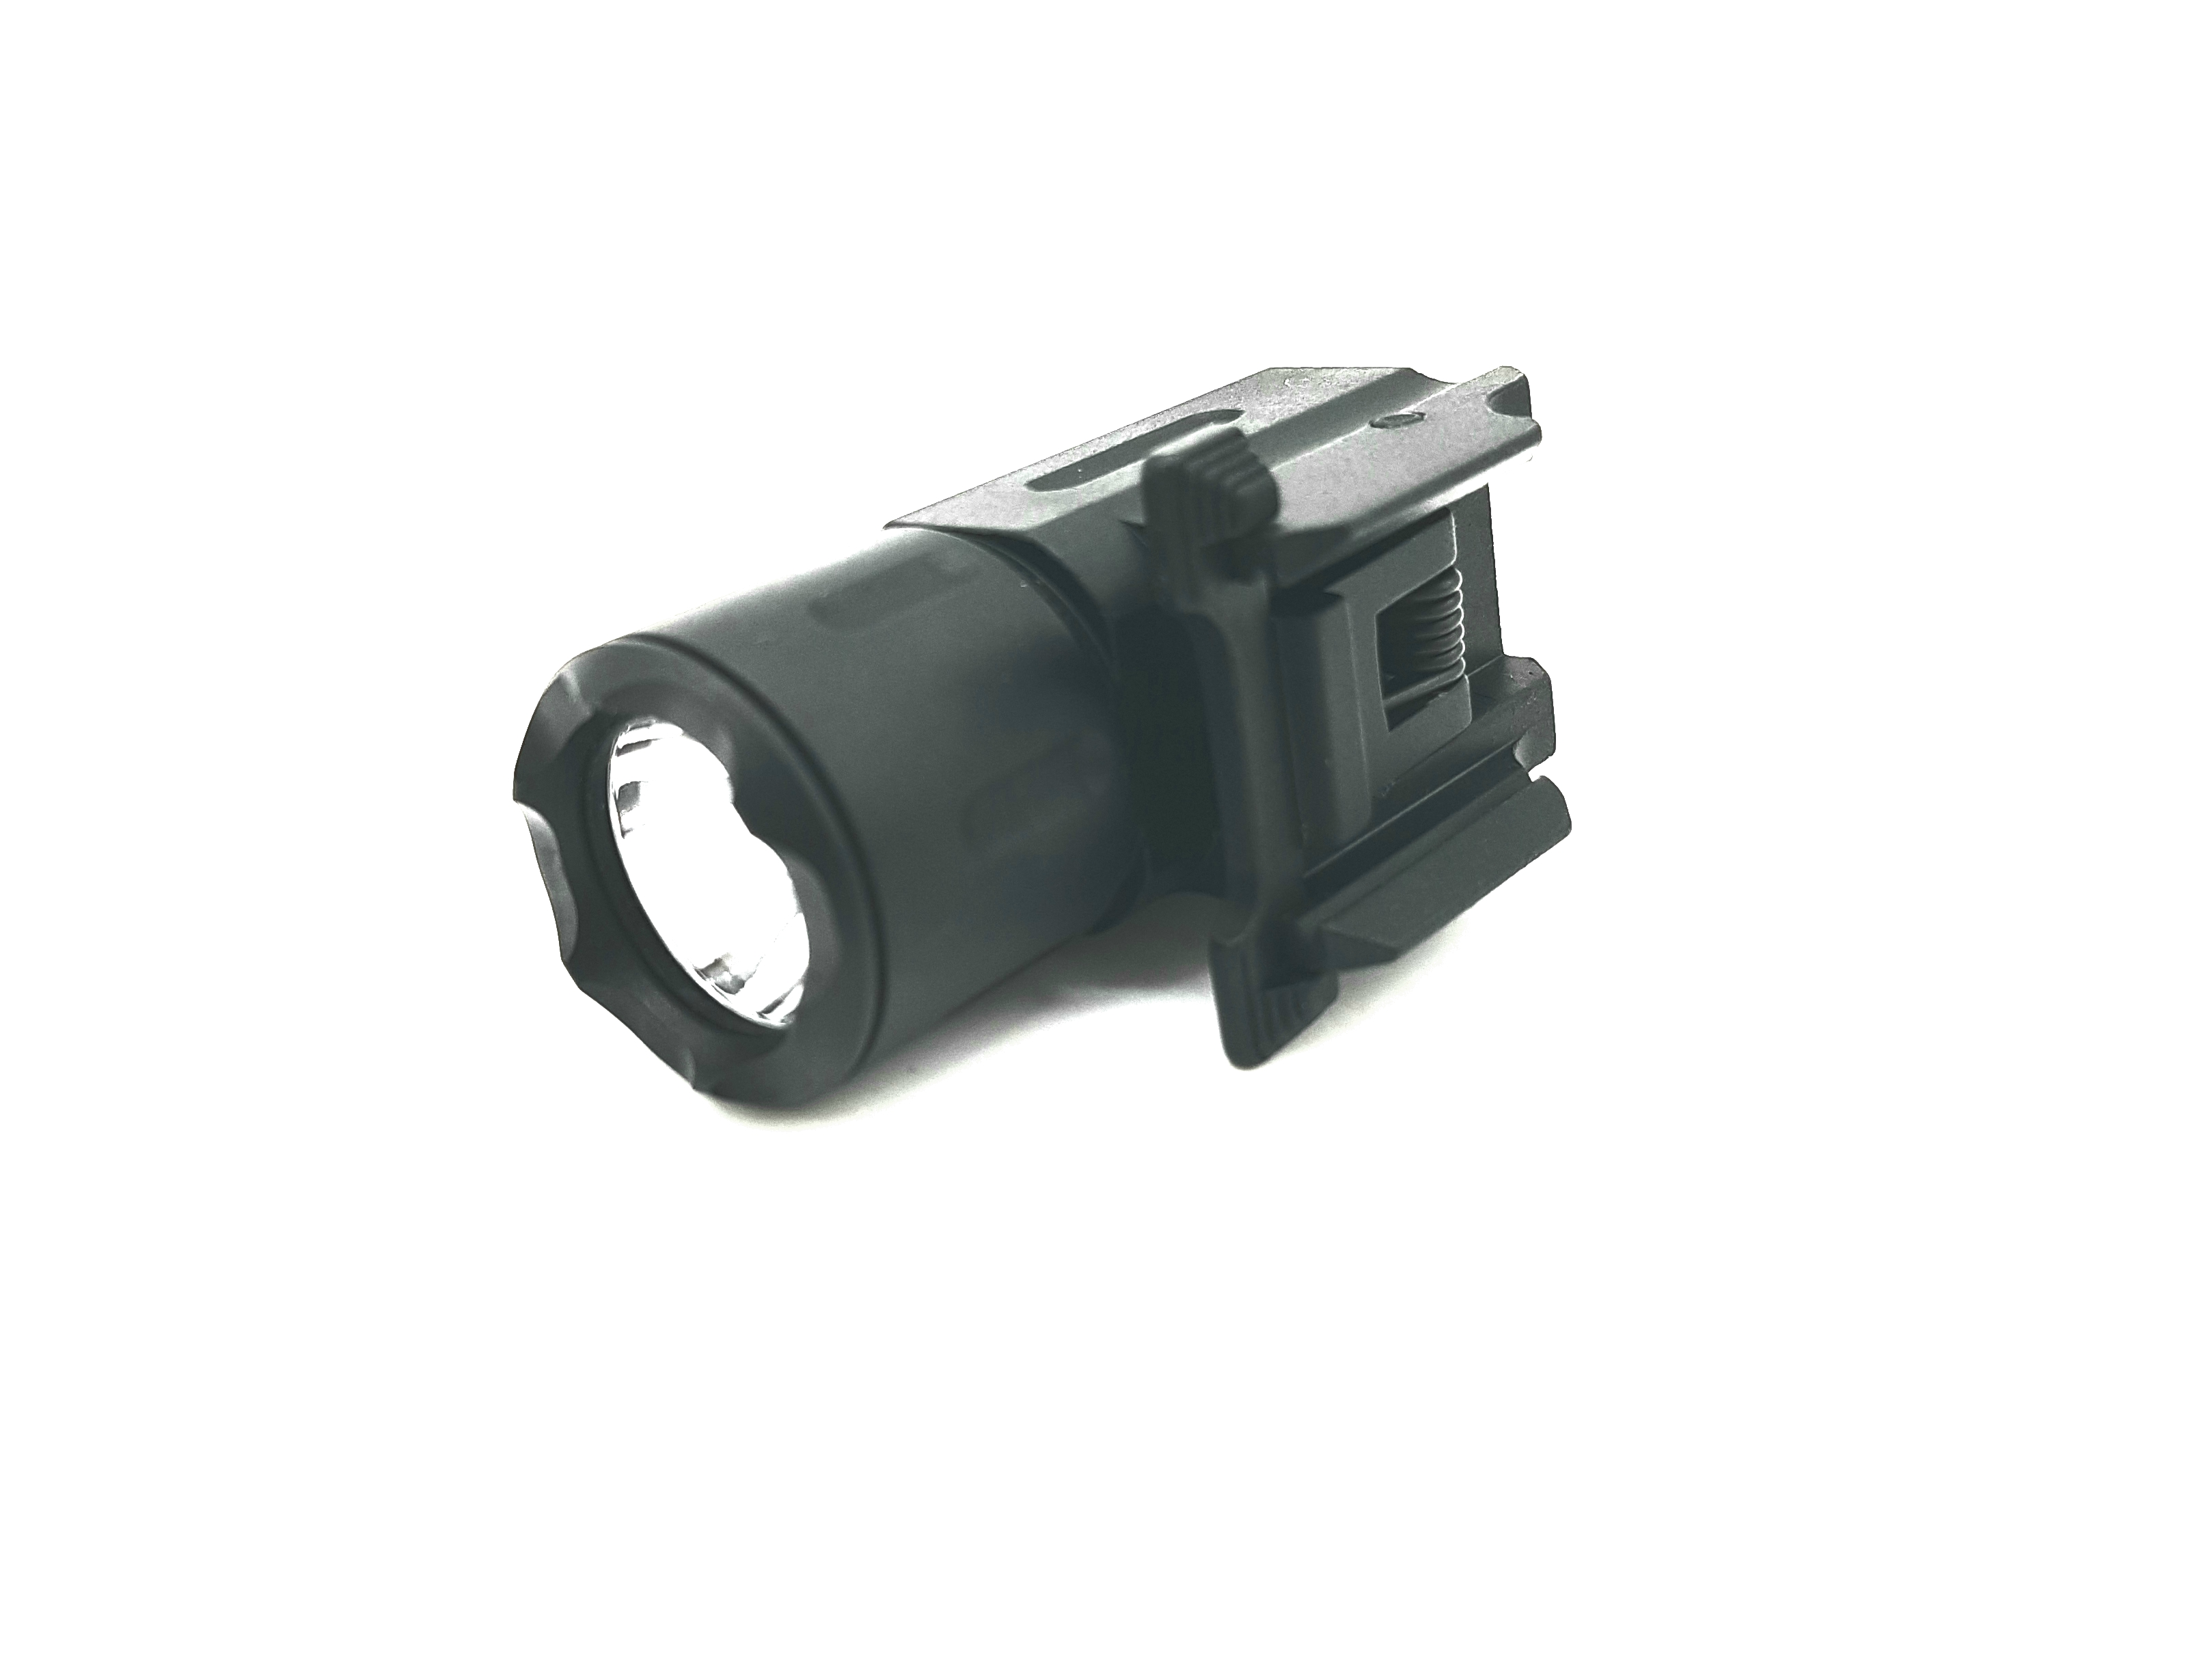 BLADES AND TRIGGERS COMPACT FLASHLIGHT W/QUICK RELEASE